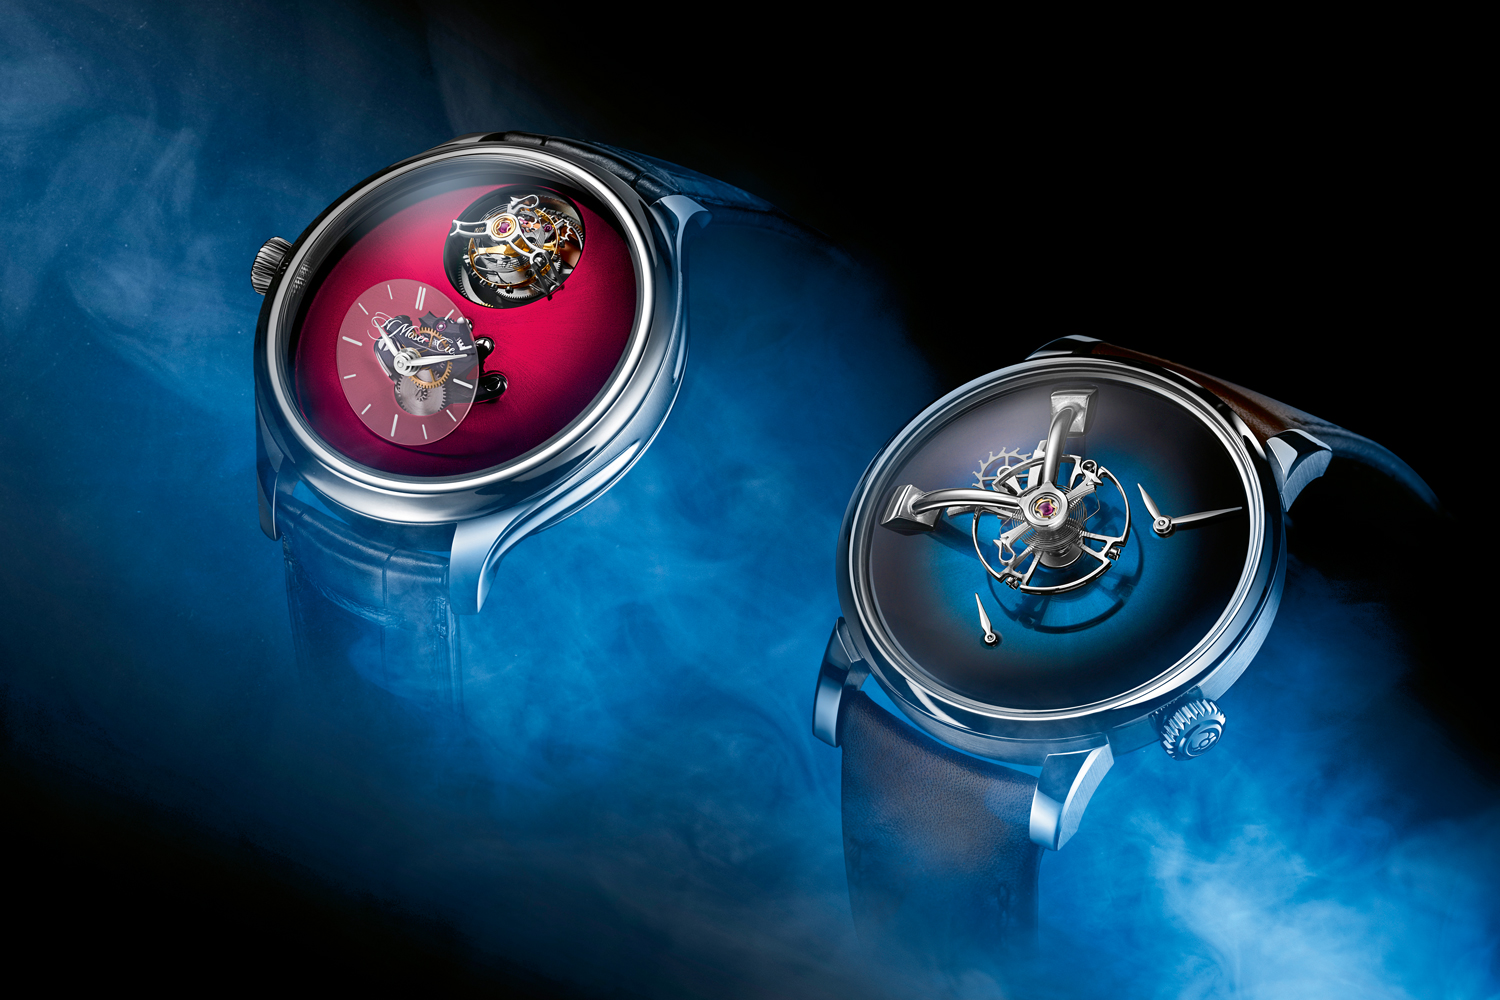 The Endeavour Cylindrical Tourbillon and the LM101 (©Revolution/Photography Munster; Digital Editing KH Koh; Stylist Yong Wei Jian)